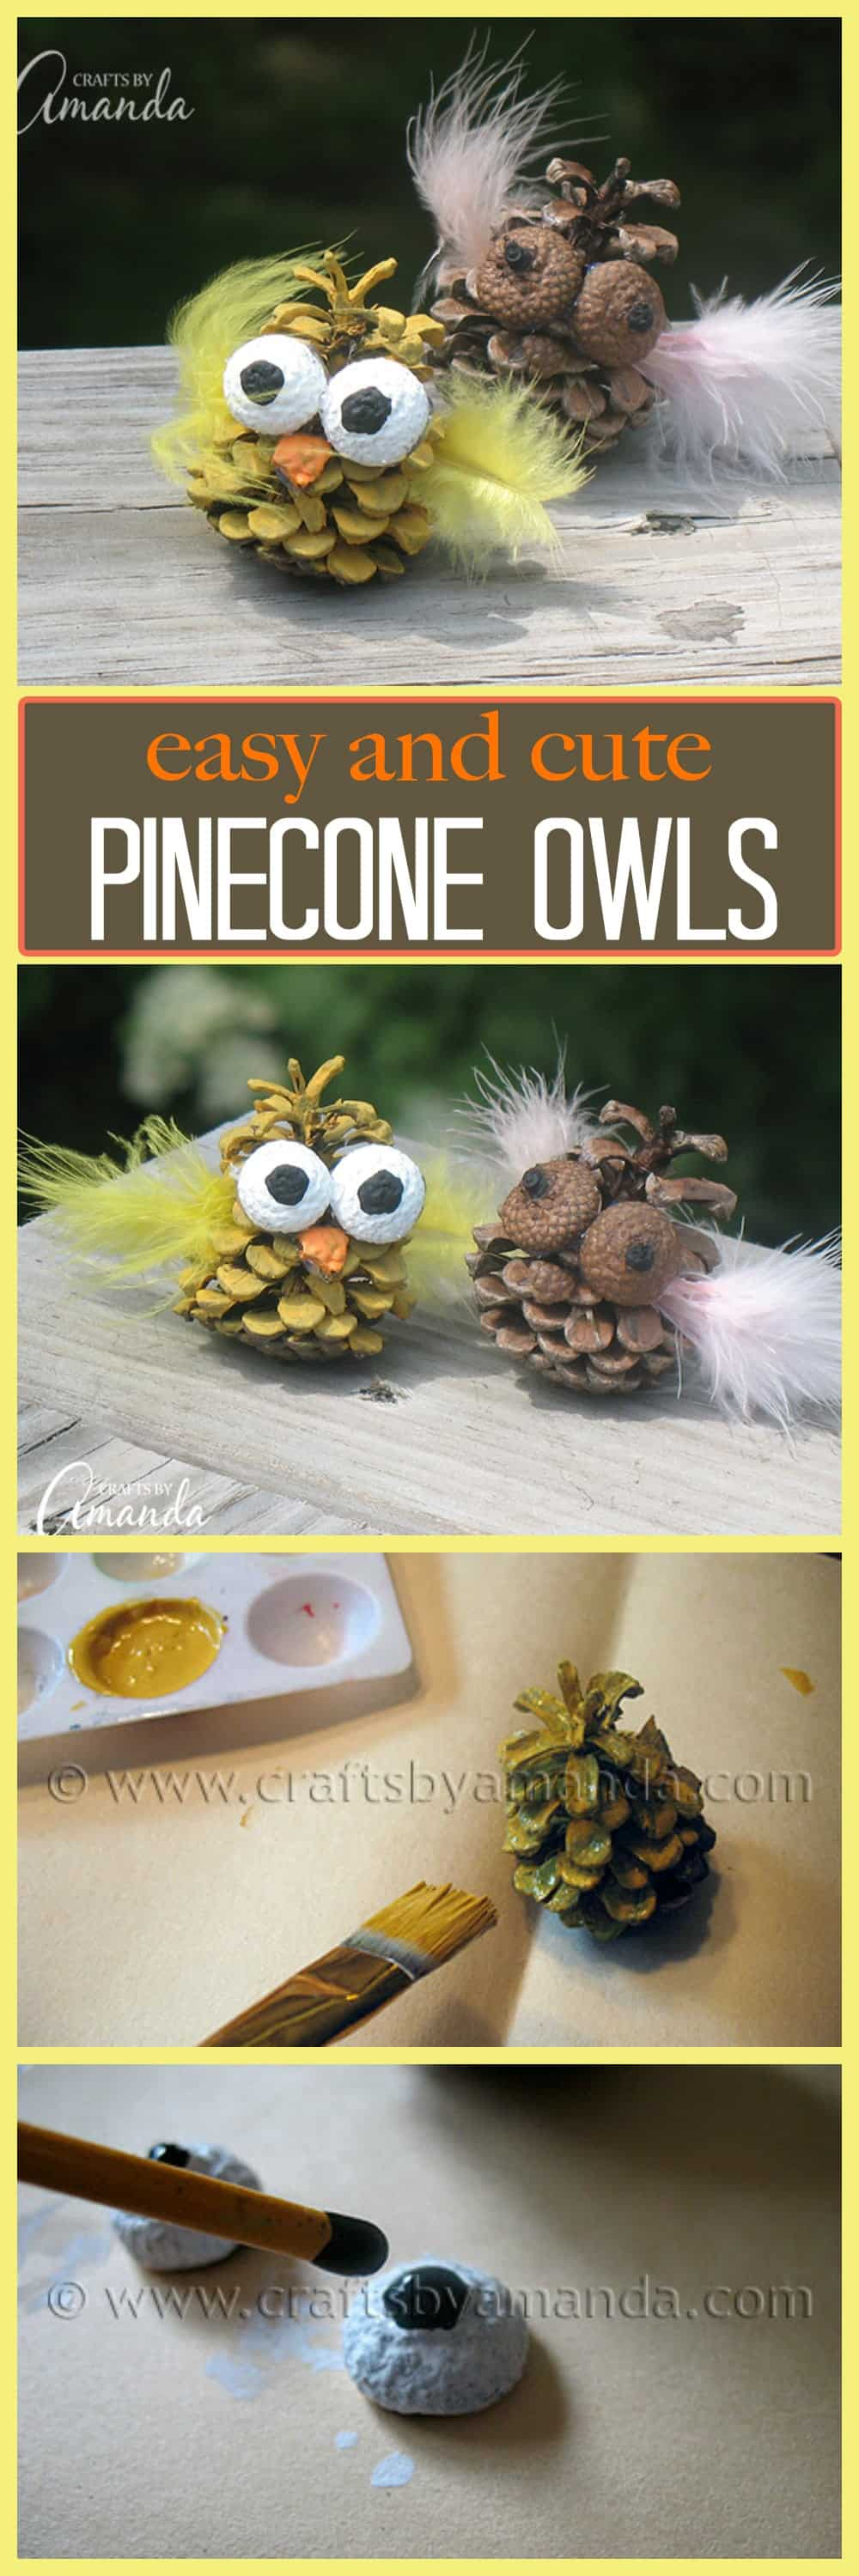 These pinecone owls are something fun for the kids to do on summer break, they're adorable and will look great perched in your child's bedroom or bunk.